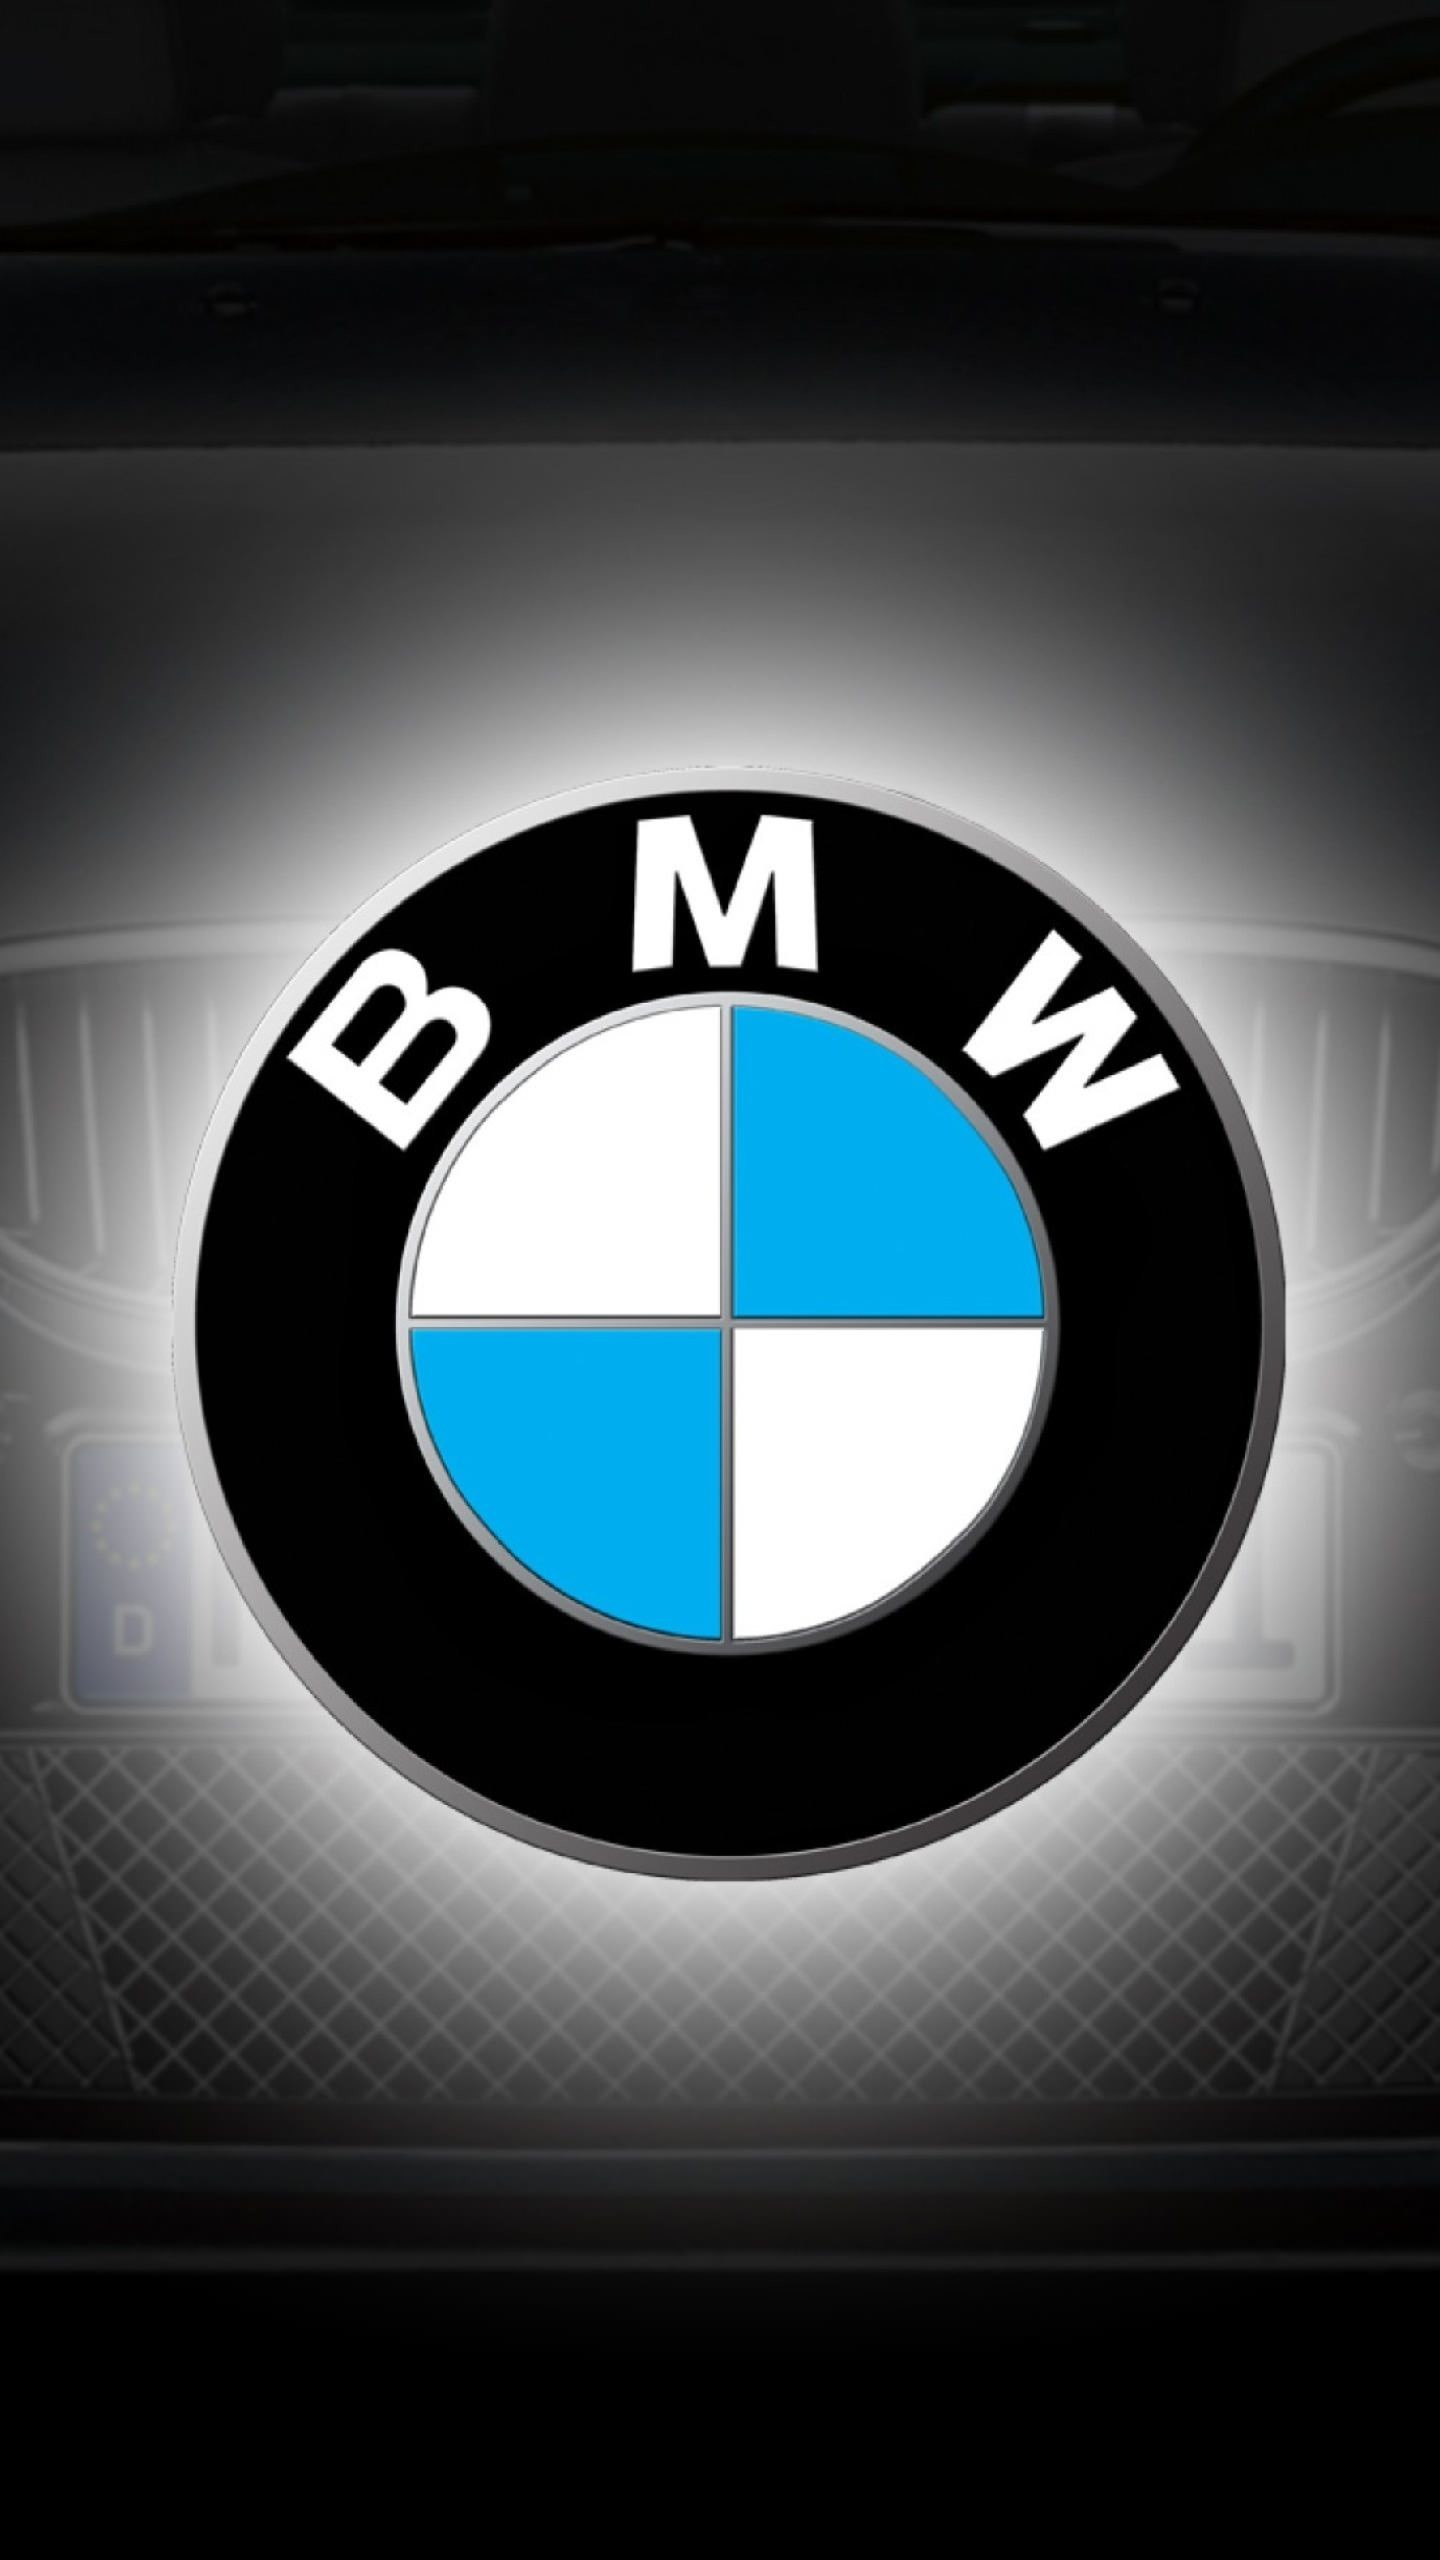 1440x2560 bmw logo android smartphone wallpaper